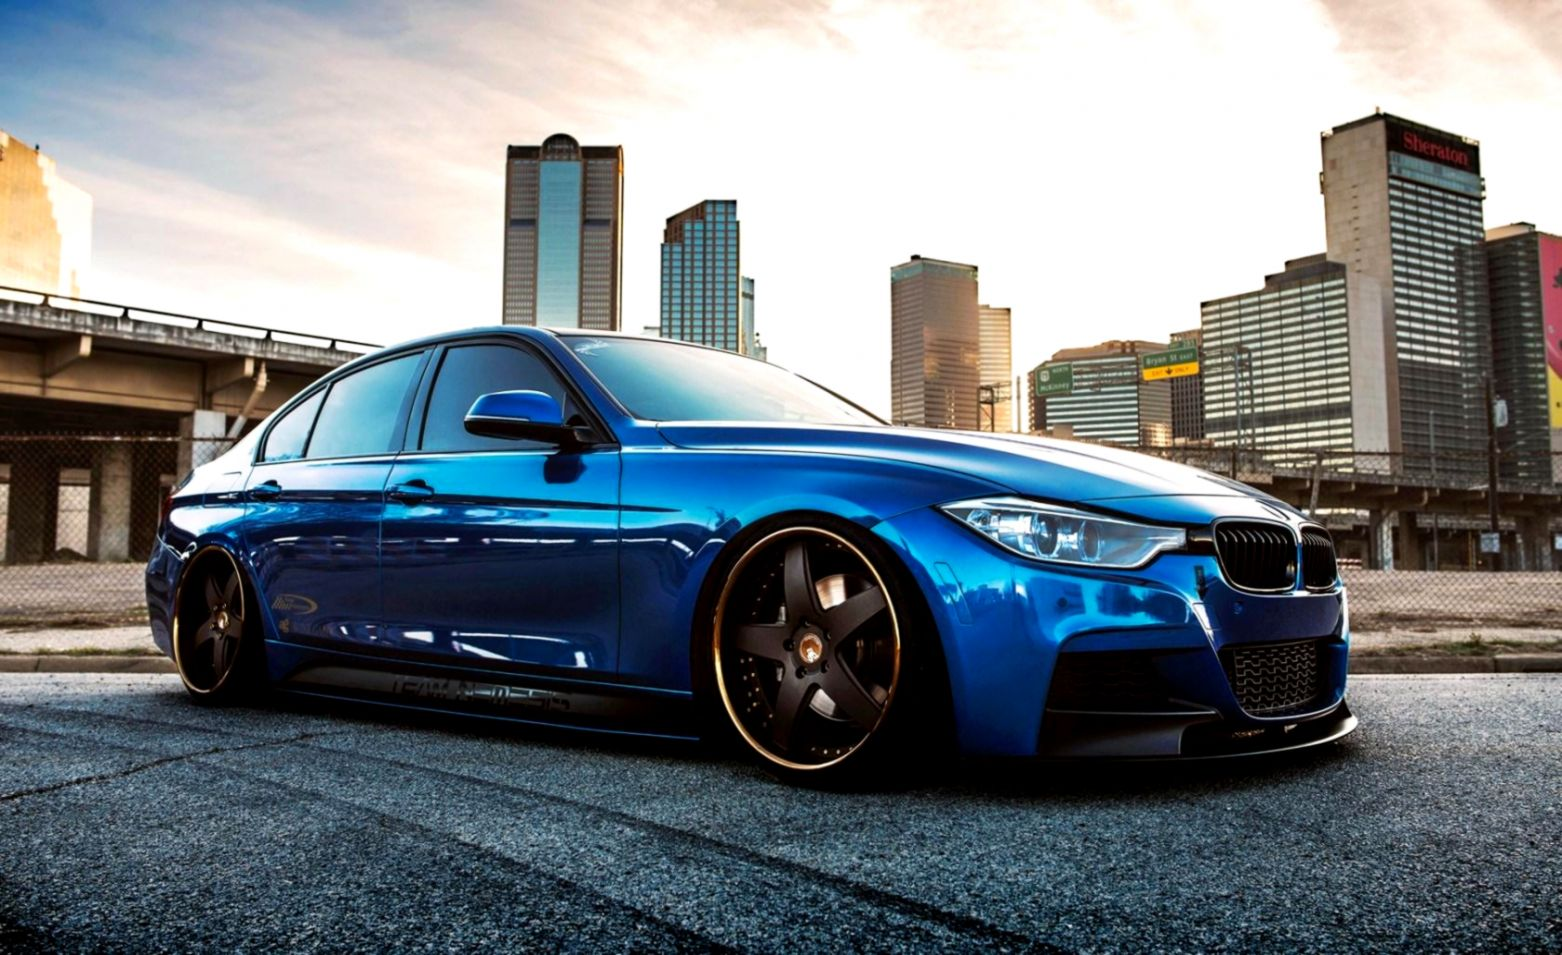 Bmw 335i F30 Car Blue Front Night Hd Wallpaper Just Wallpapers